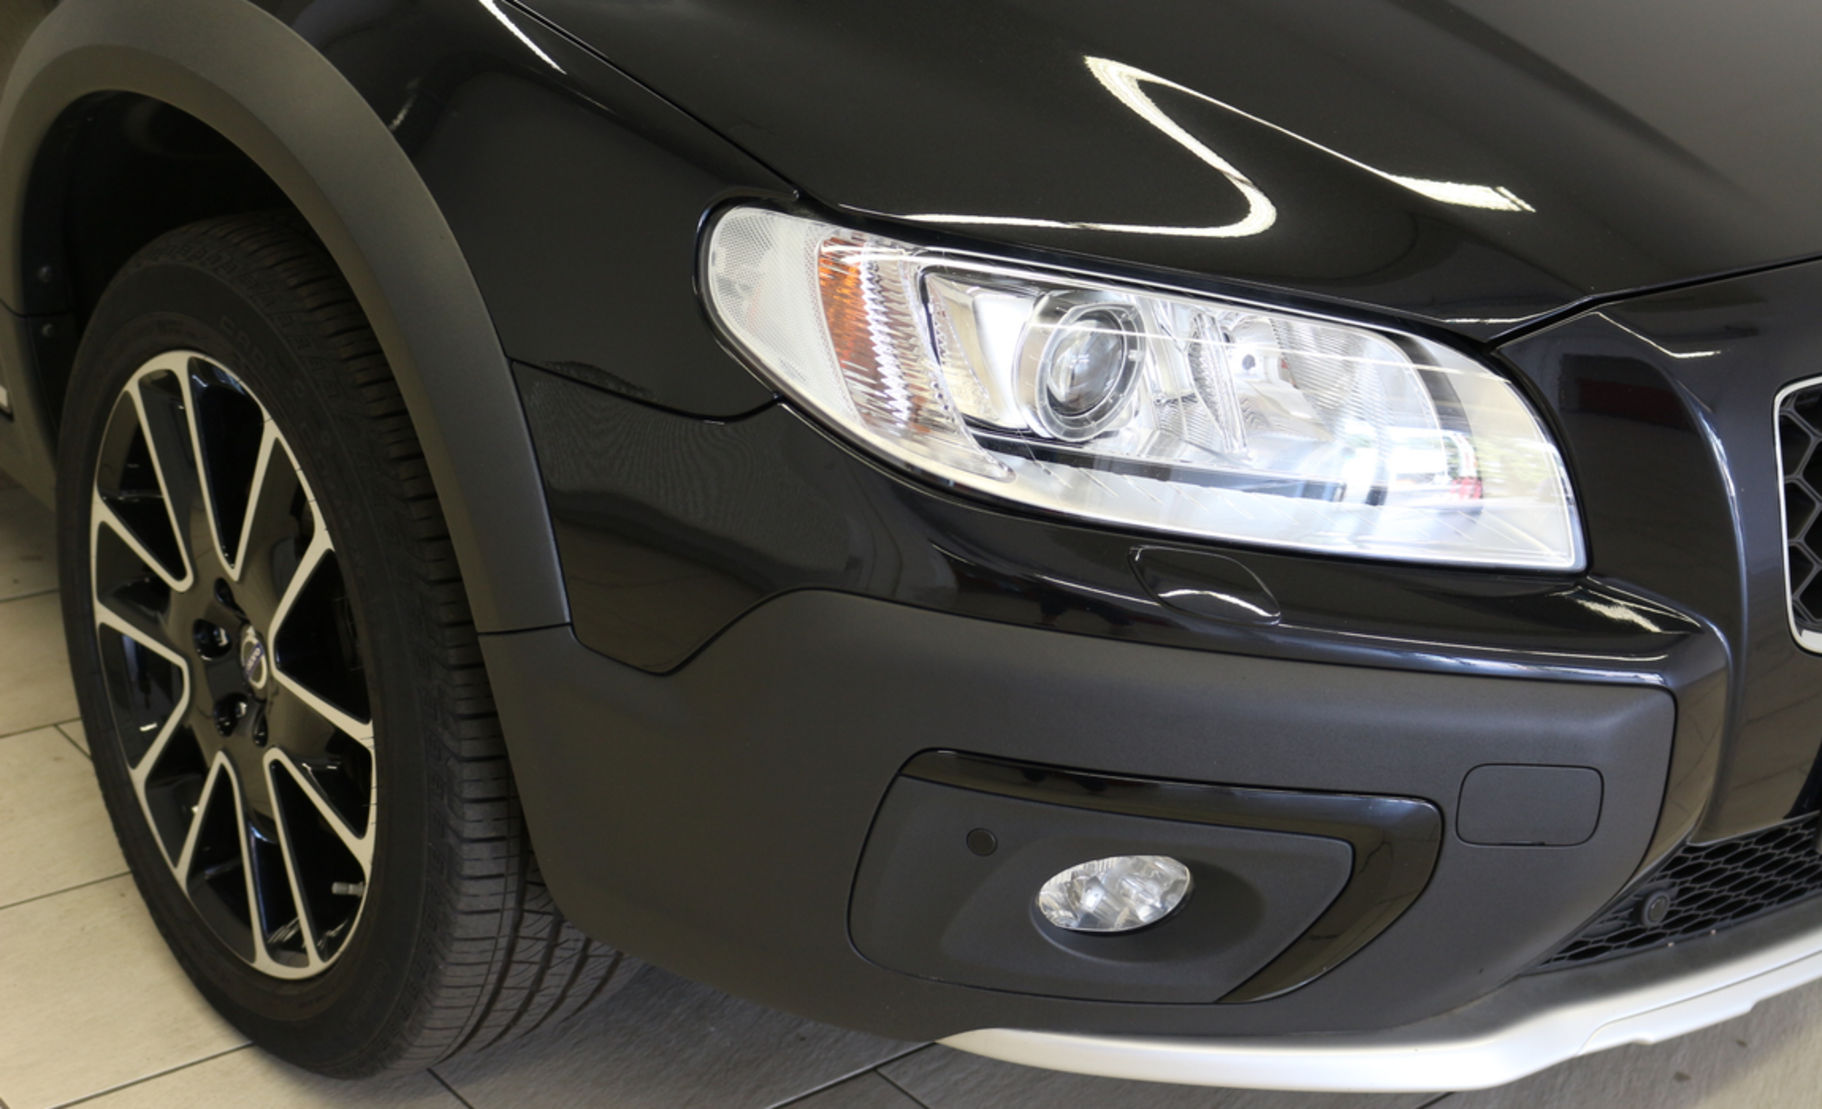 Volvo XC70 D5 AWD Geartronic Black Edition (563295) detail2